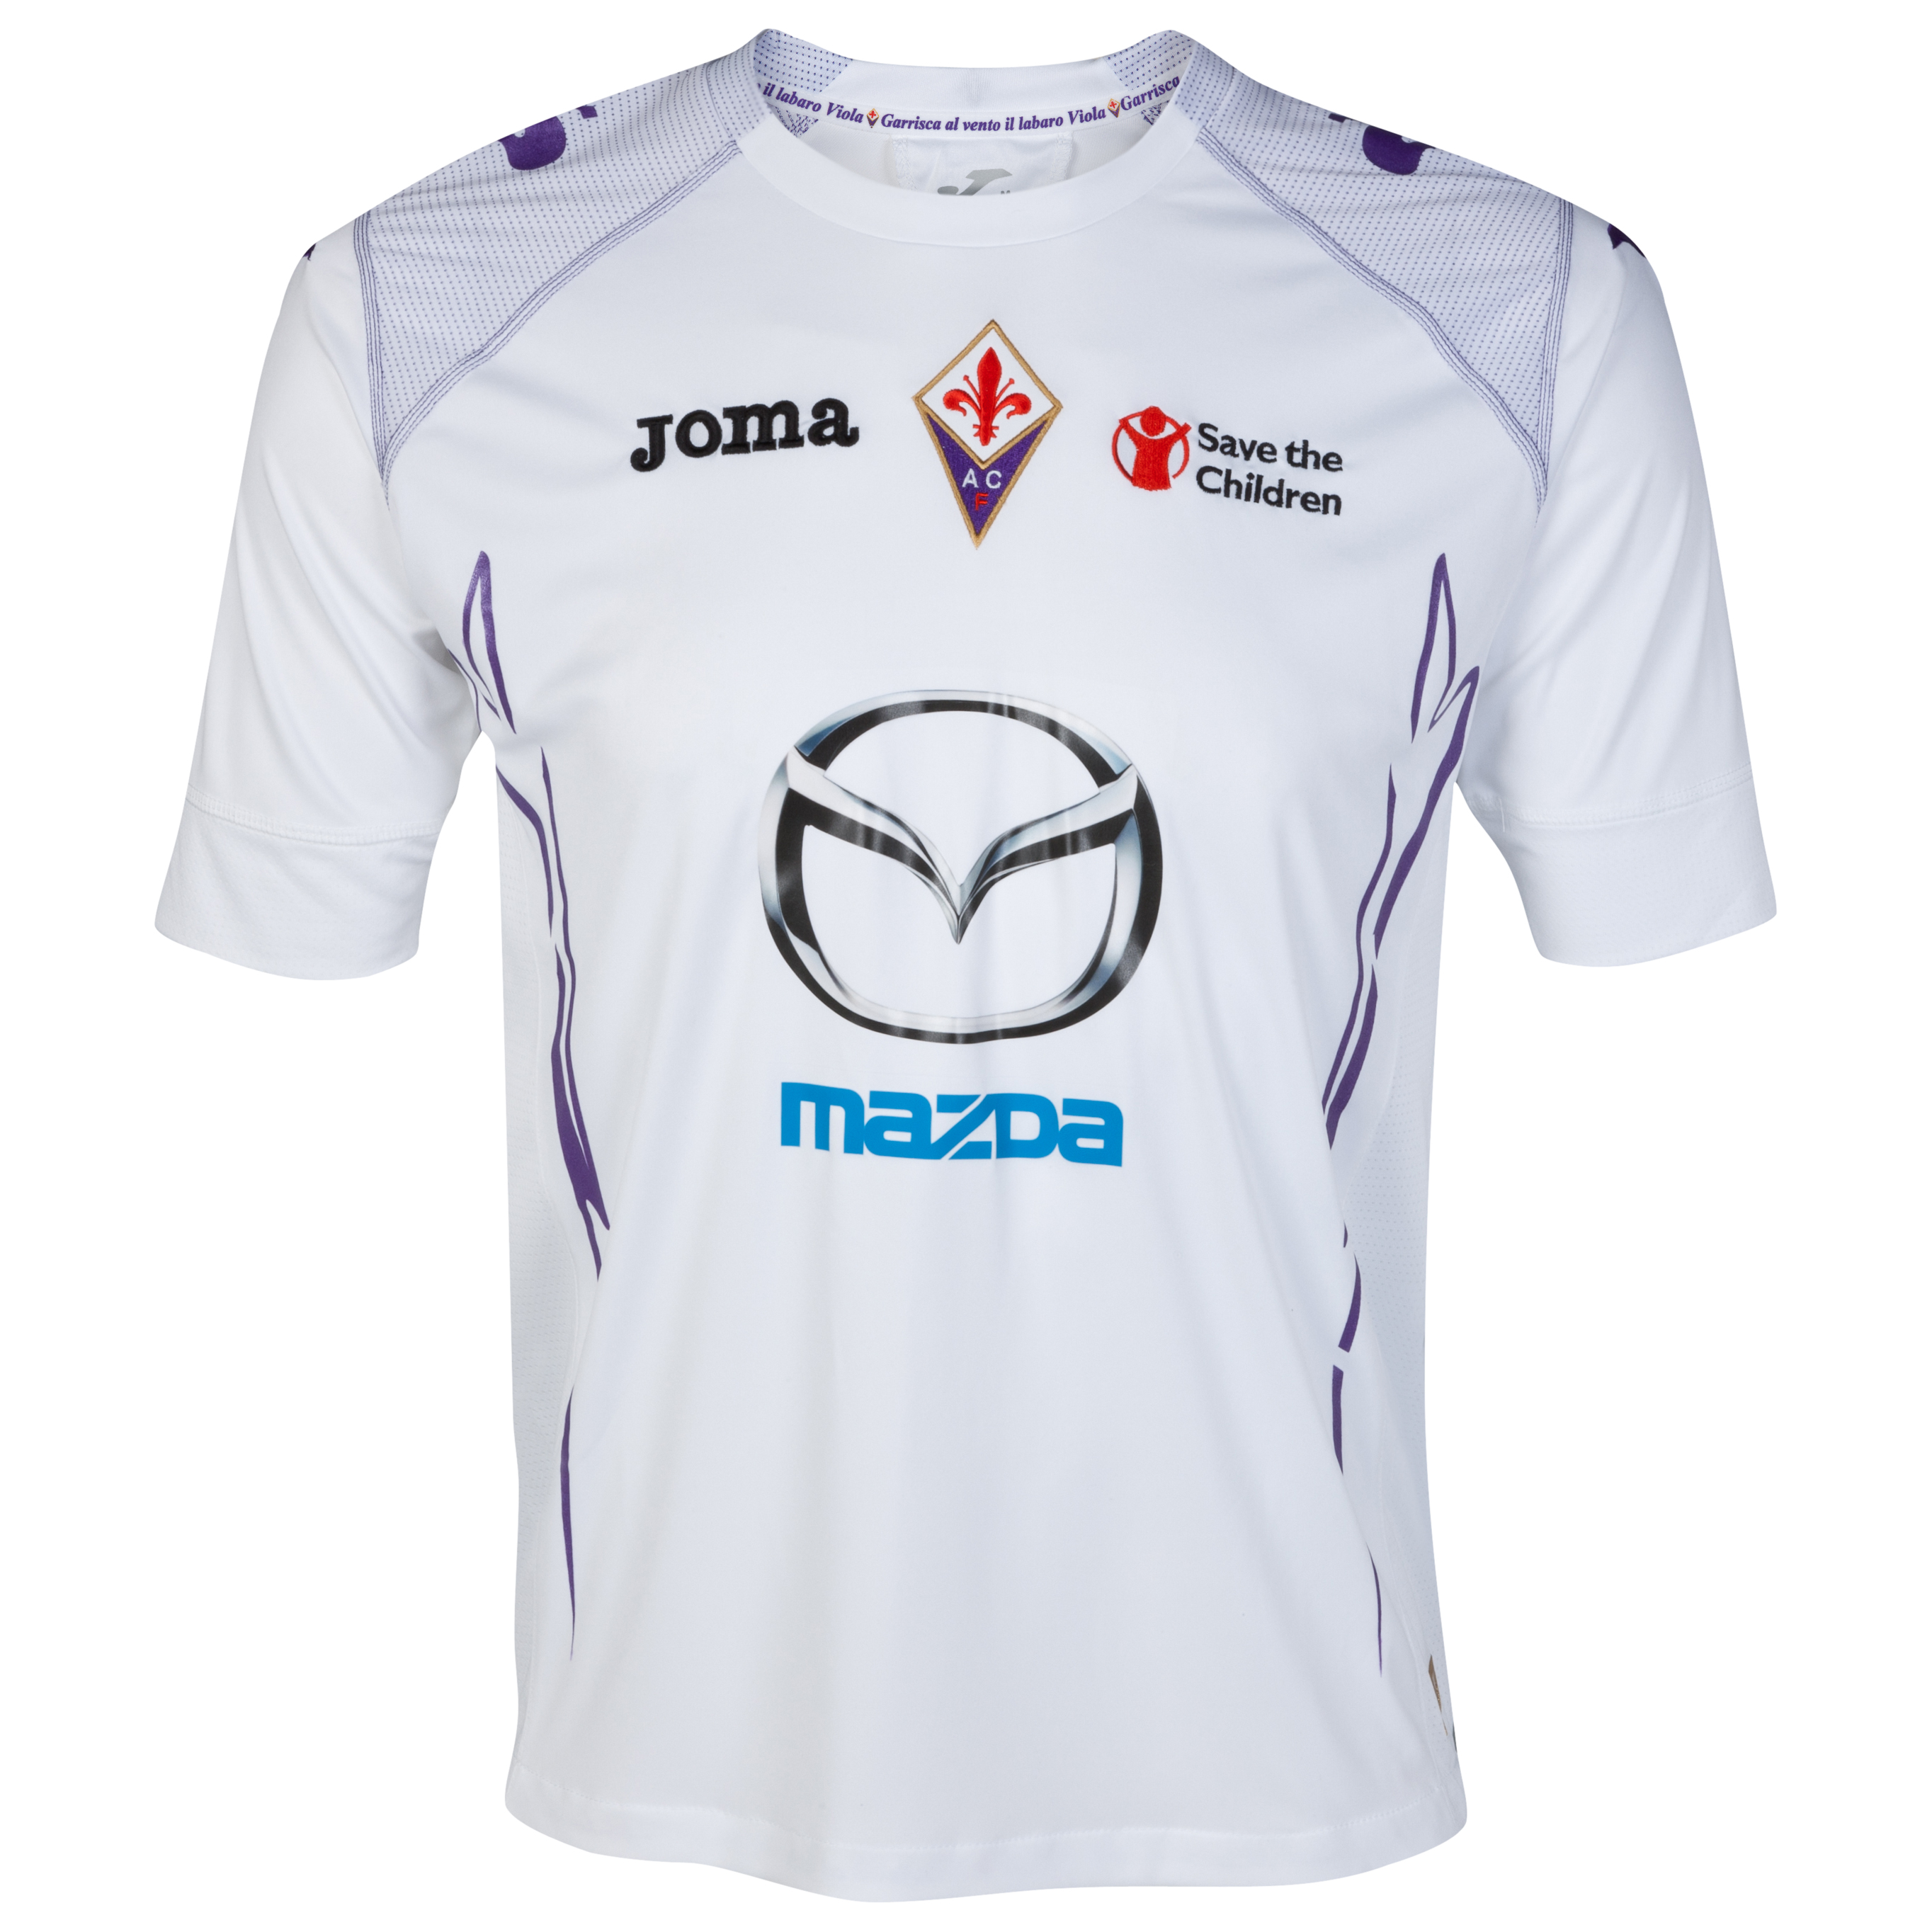 Fiorentina Away Shirt 2012/2013